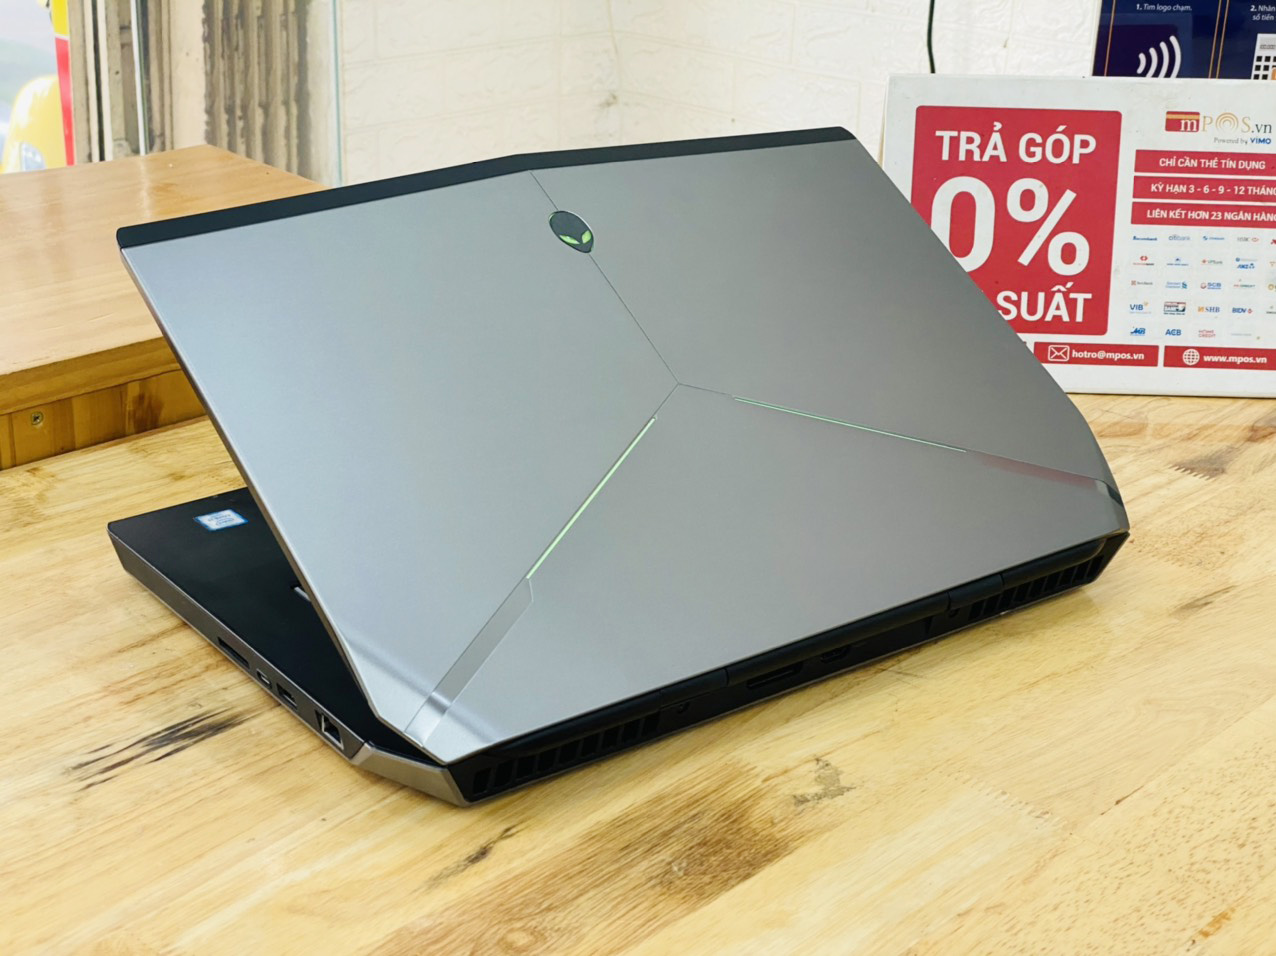 Alienware 15 R2 i7-6700HQ